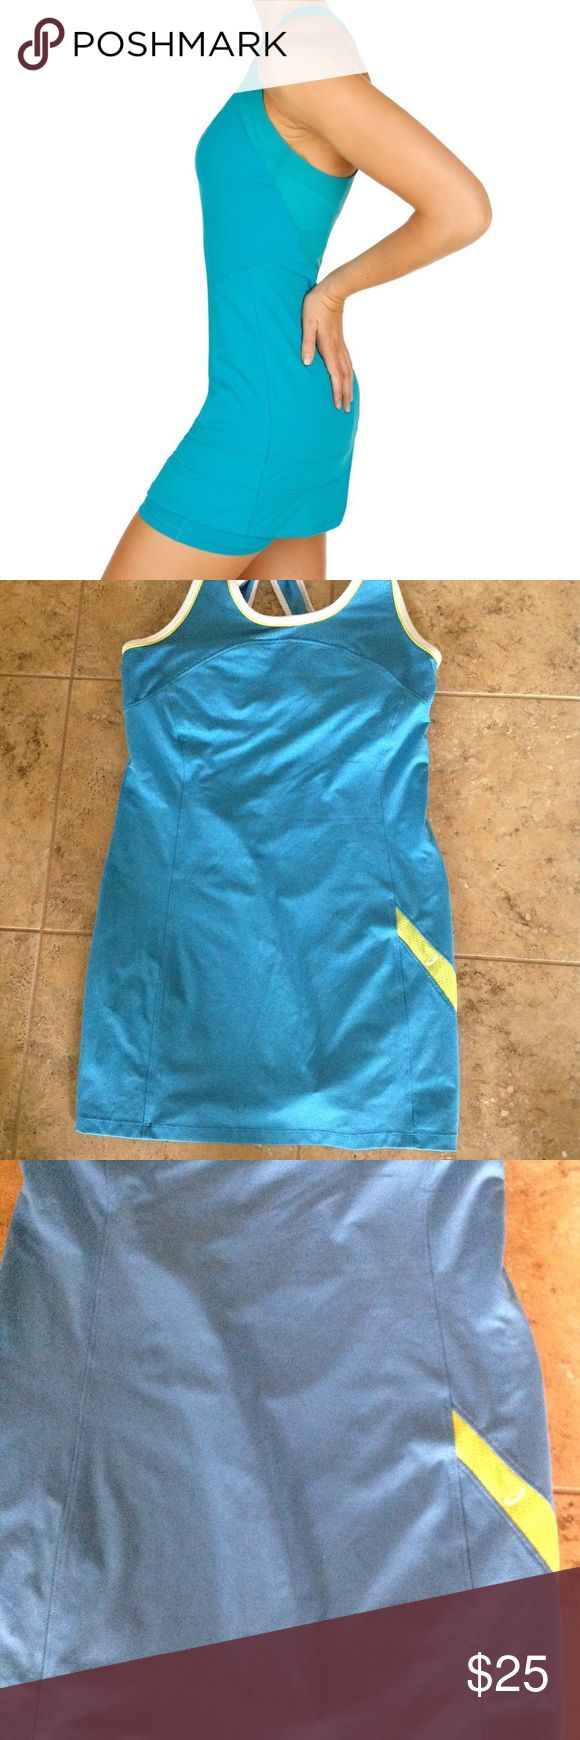 💎💎💎Asics Athletic Dress💎💎💎 💎💎💎💎Asics athletic criss cross back dress. In a teal and vibrant yellow color. The dress has a built in bra foe support. It's made from 85% polyester and 15% spandex. It's in excellent condition.💎💎💎💎 Asics Dresses